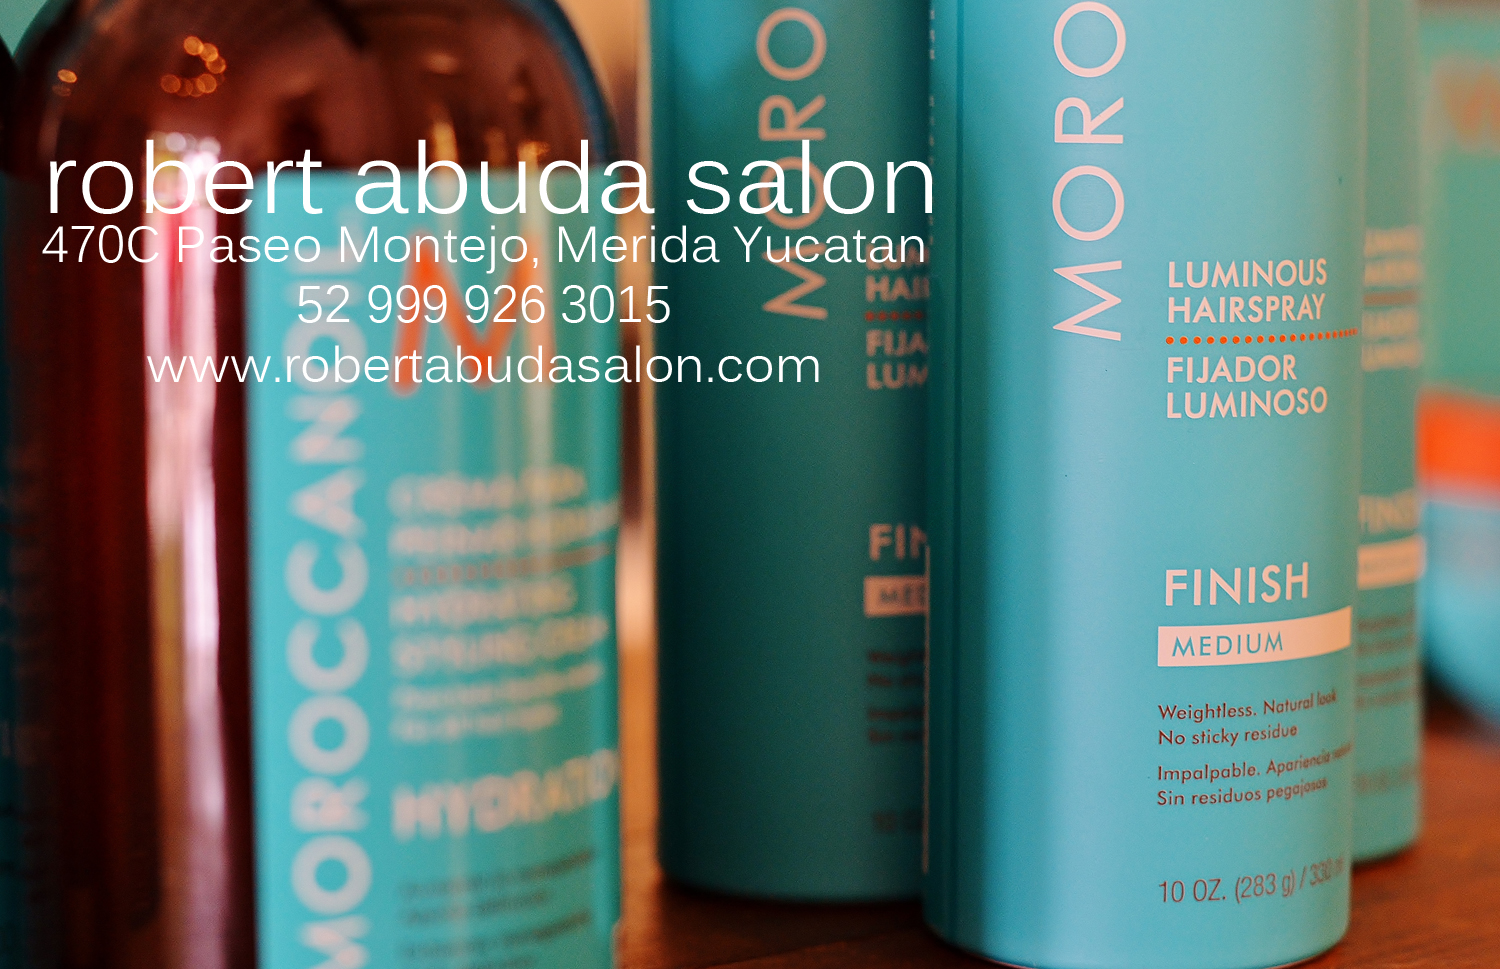 moroccan oil salon de belleza merida 9